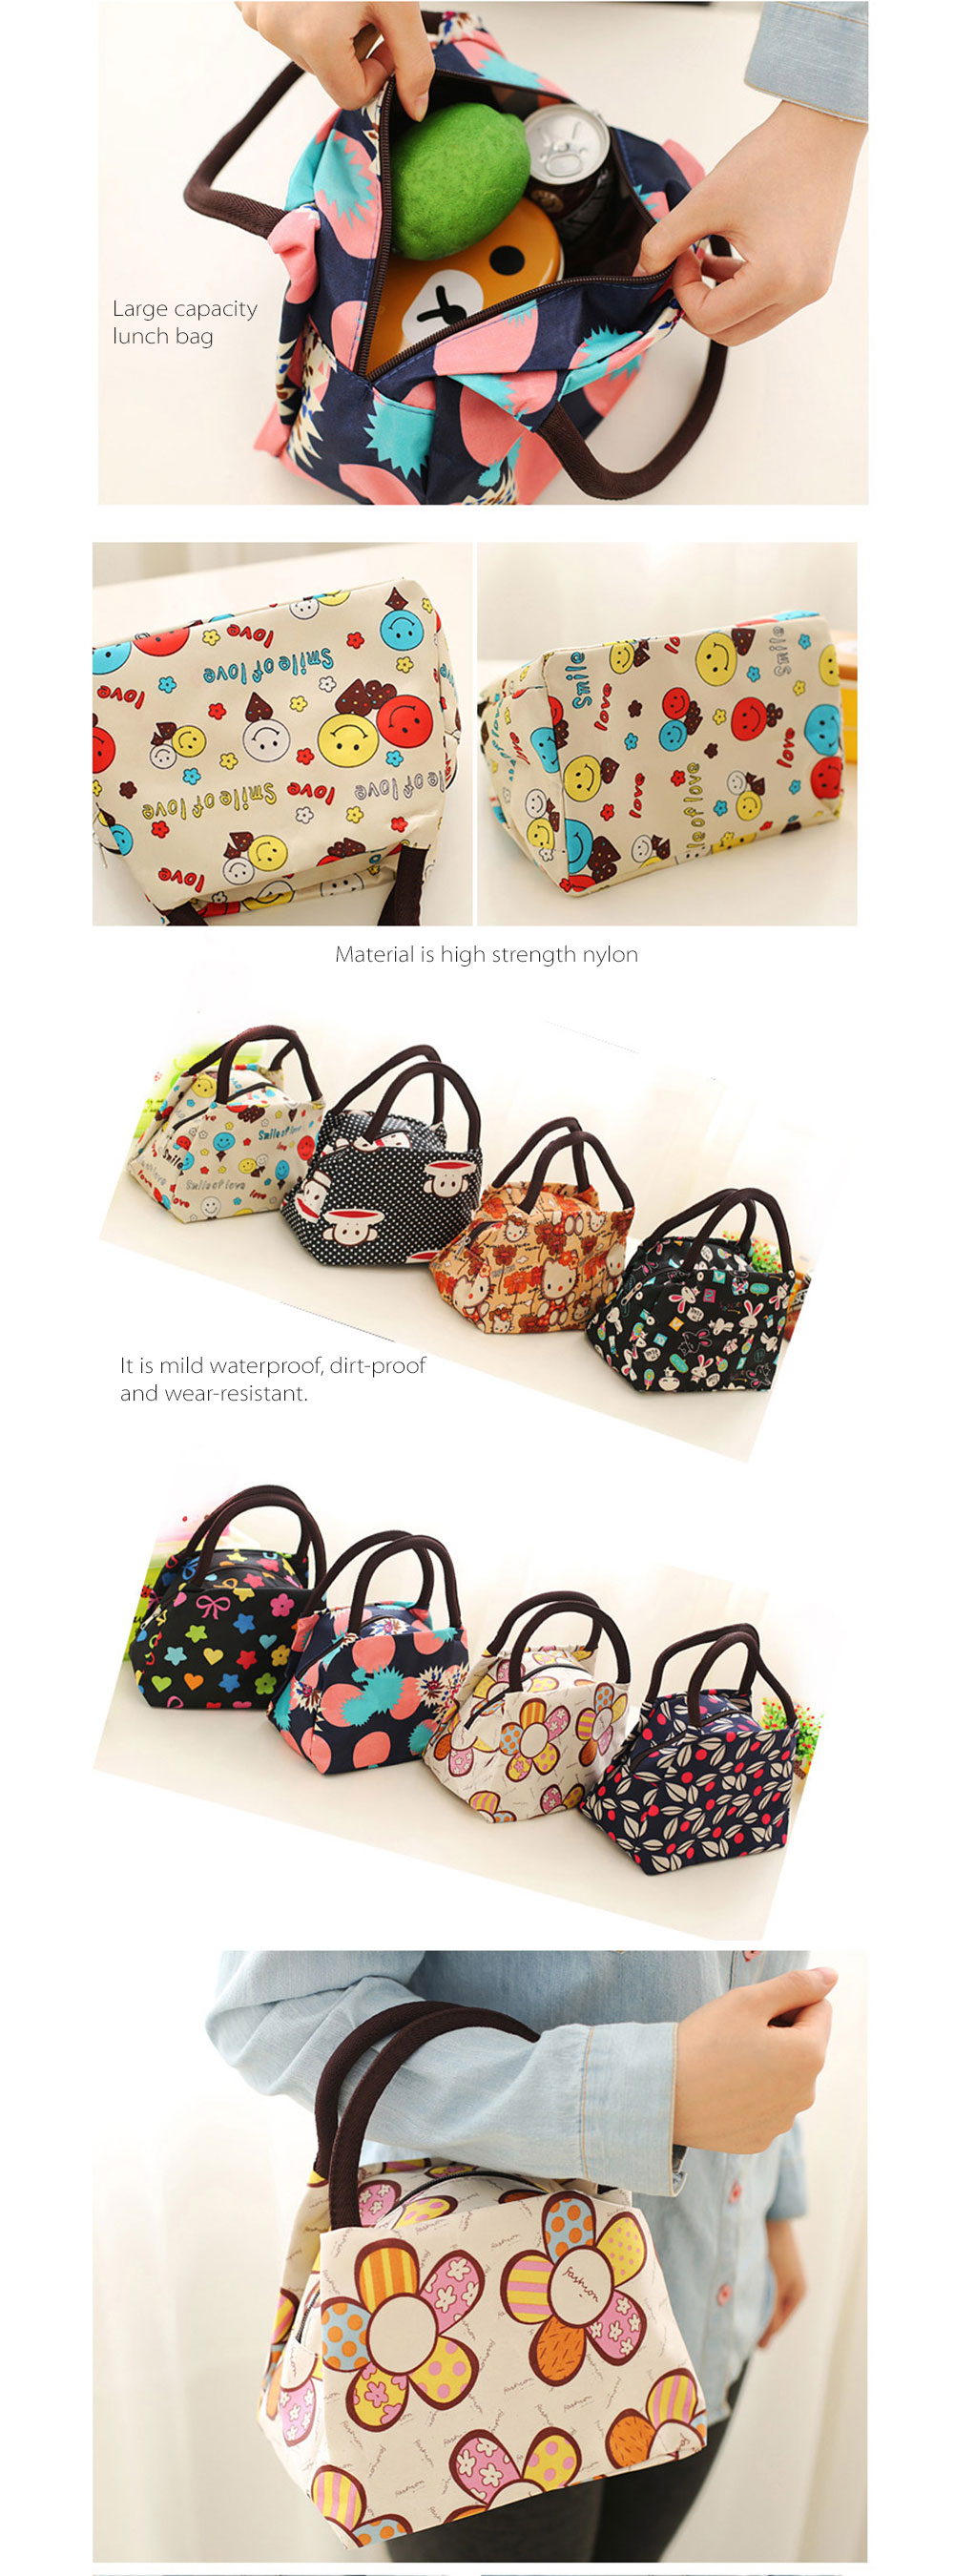 Waterproof Fabric Lunch Bag Variety of Options